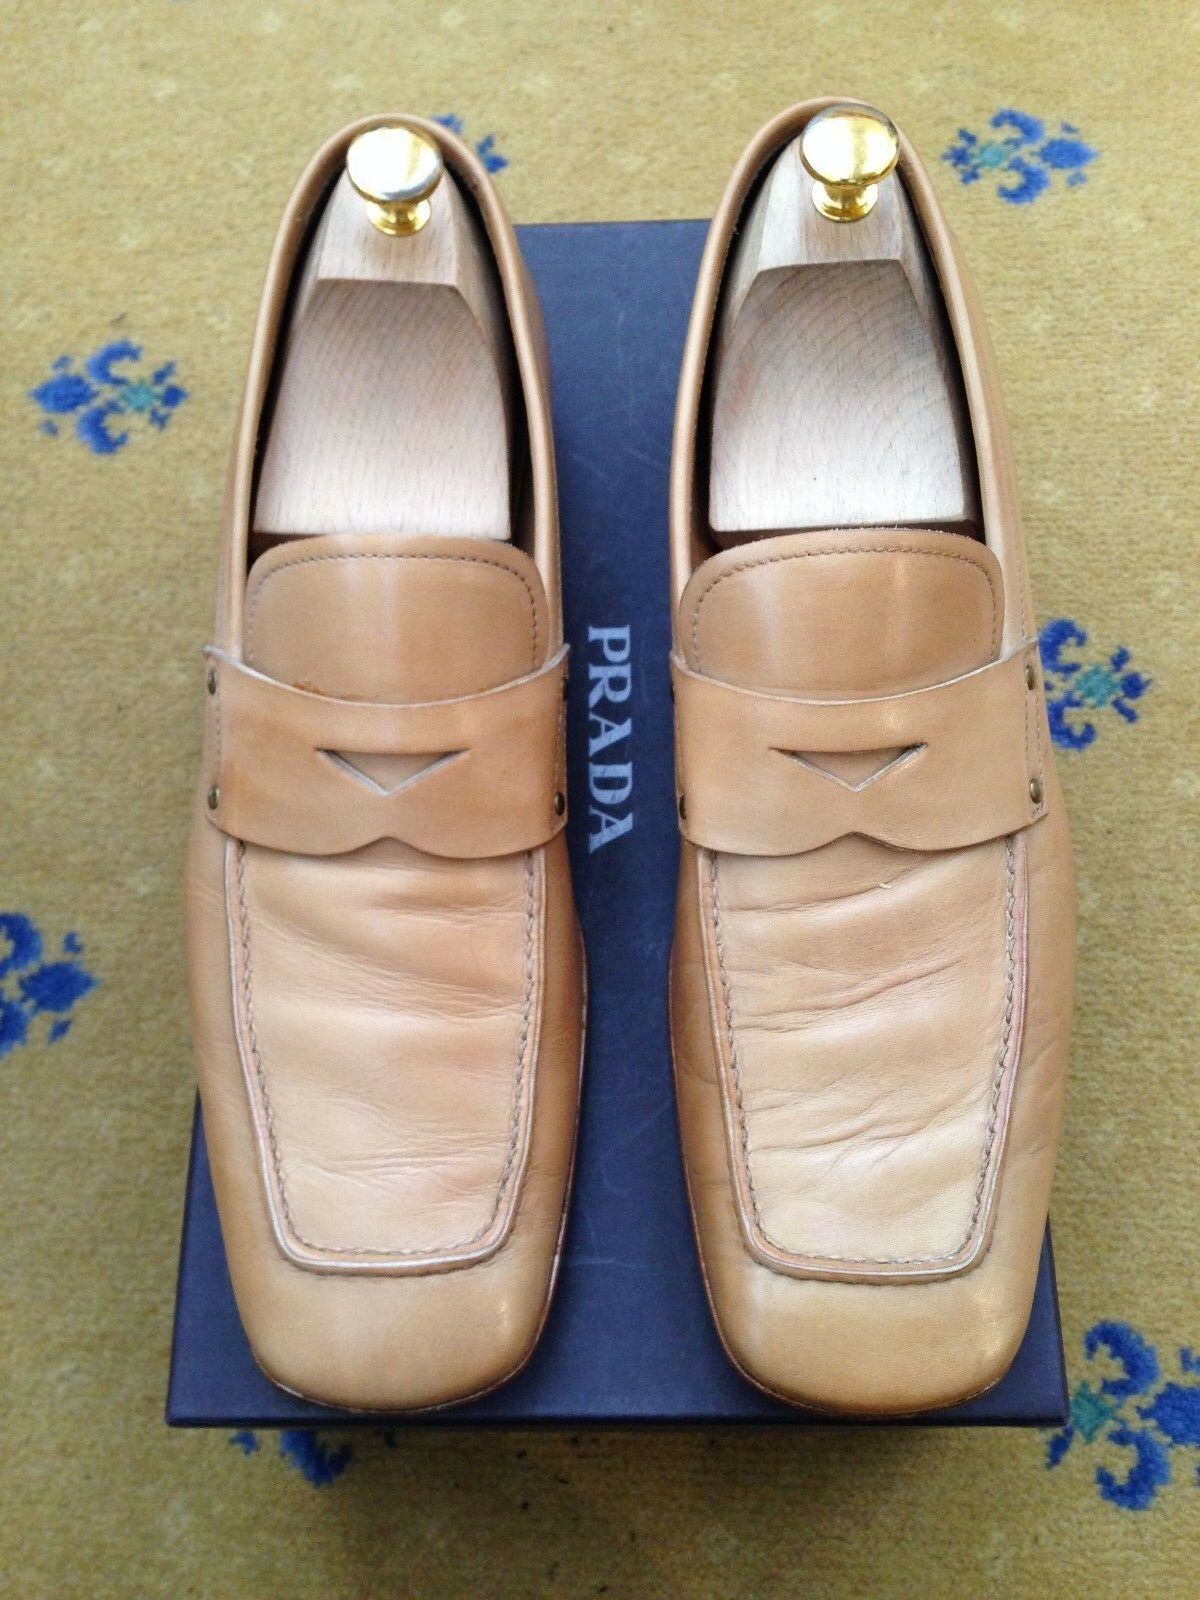 PRADA Scarpe Da Uomo TAN BROWN IN PELLE MOCASSINI US 11 EU 44 MADE IN ITALY